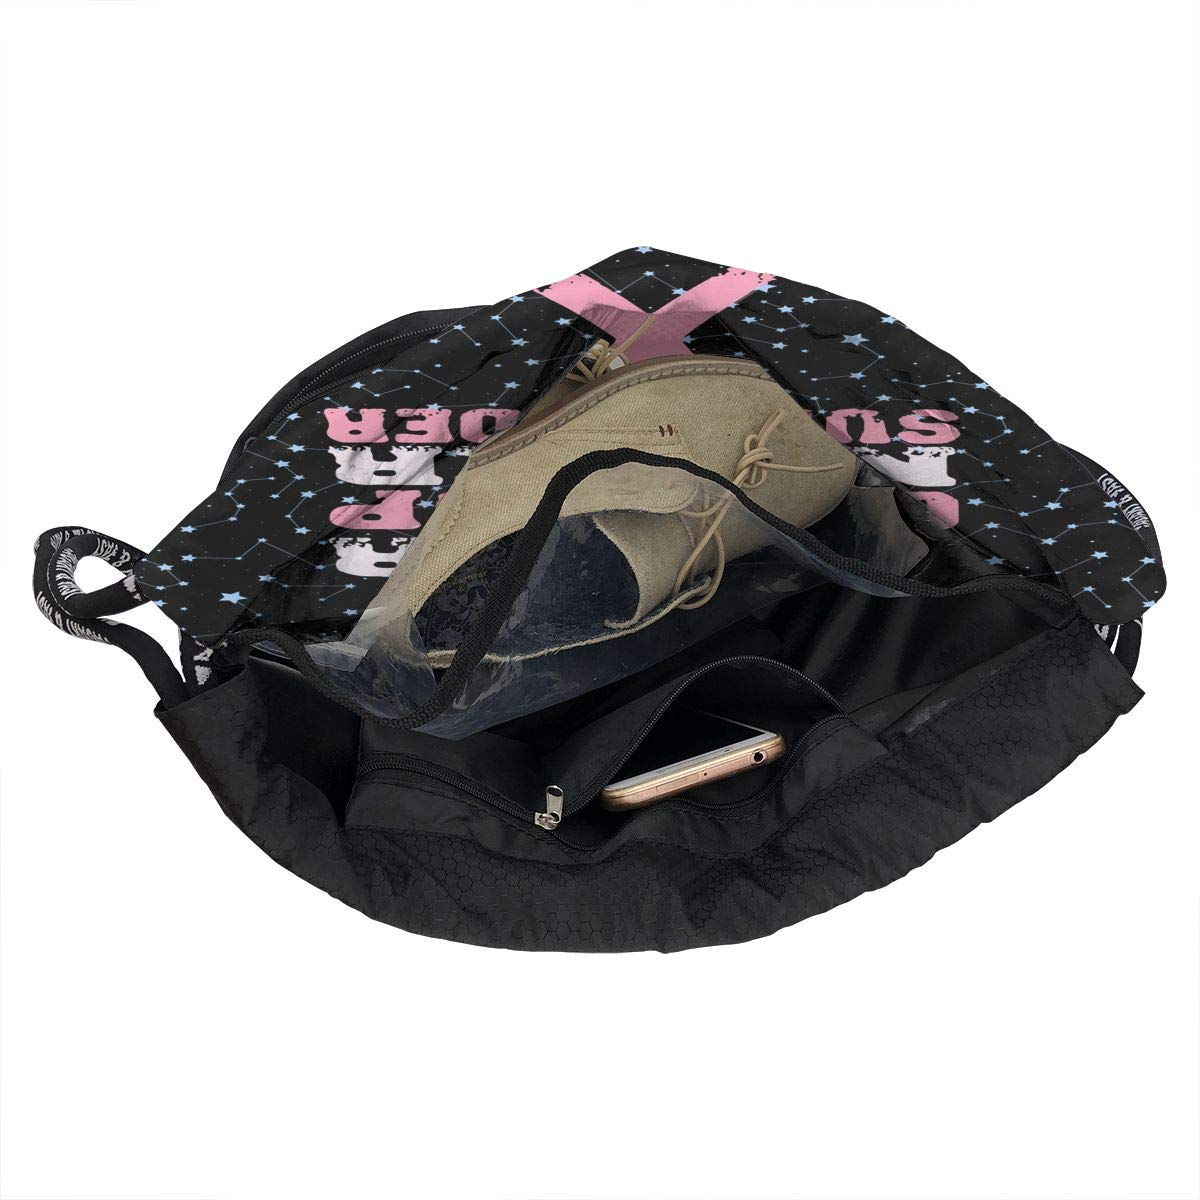 BREAST CANCER AWARENESS Drawstring Bag Multifunctional String Backpack Custom Cinch Backpack Rucksack Gym Bag